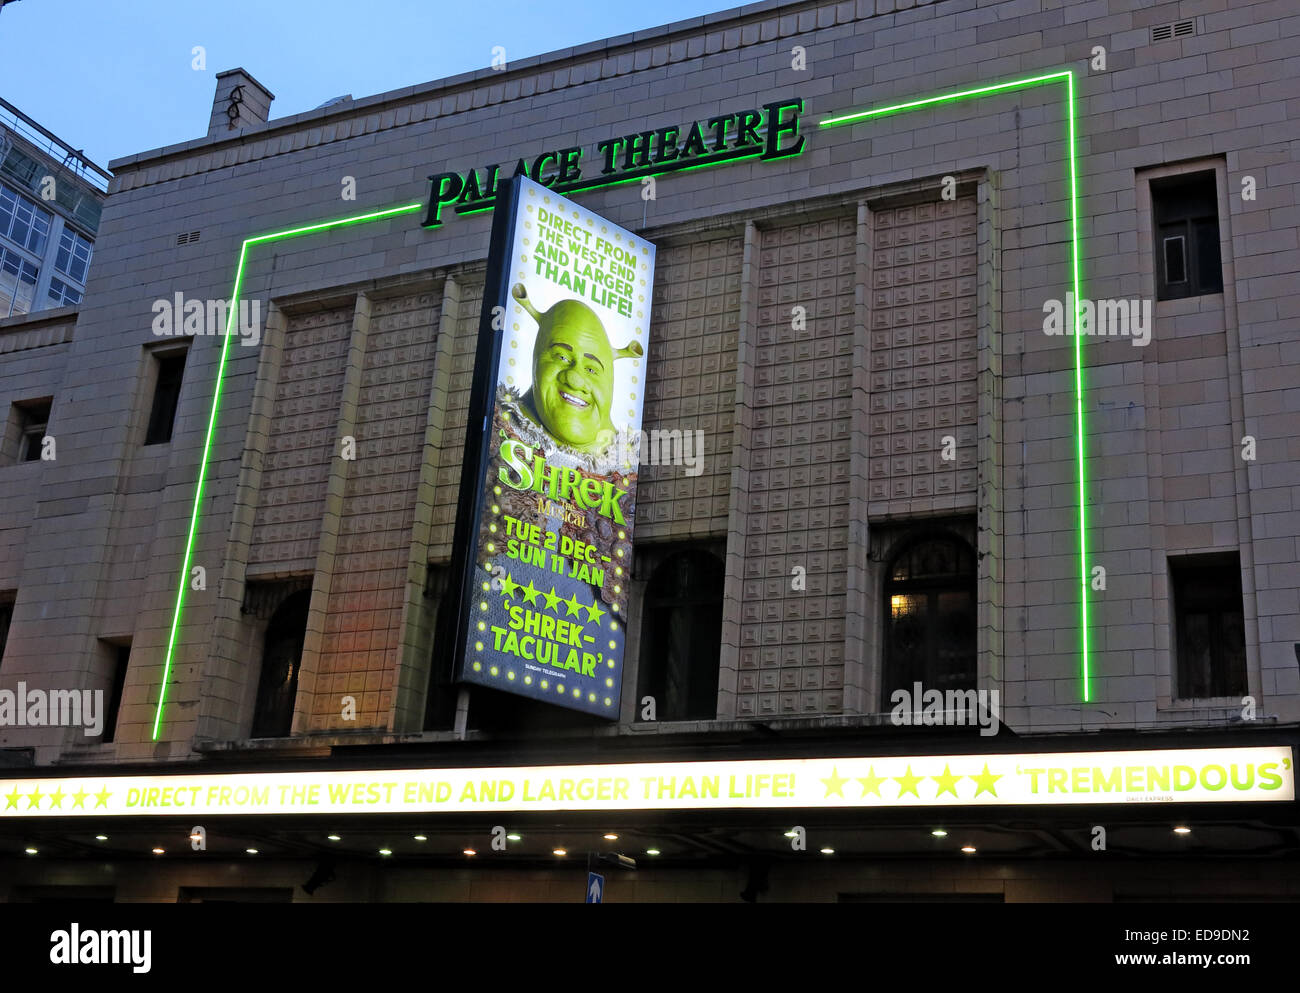 Shrek at The palace theatre Oxford Rd Manchester at dusk - Stock Image